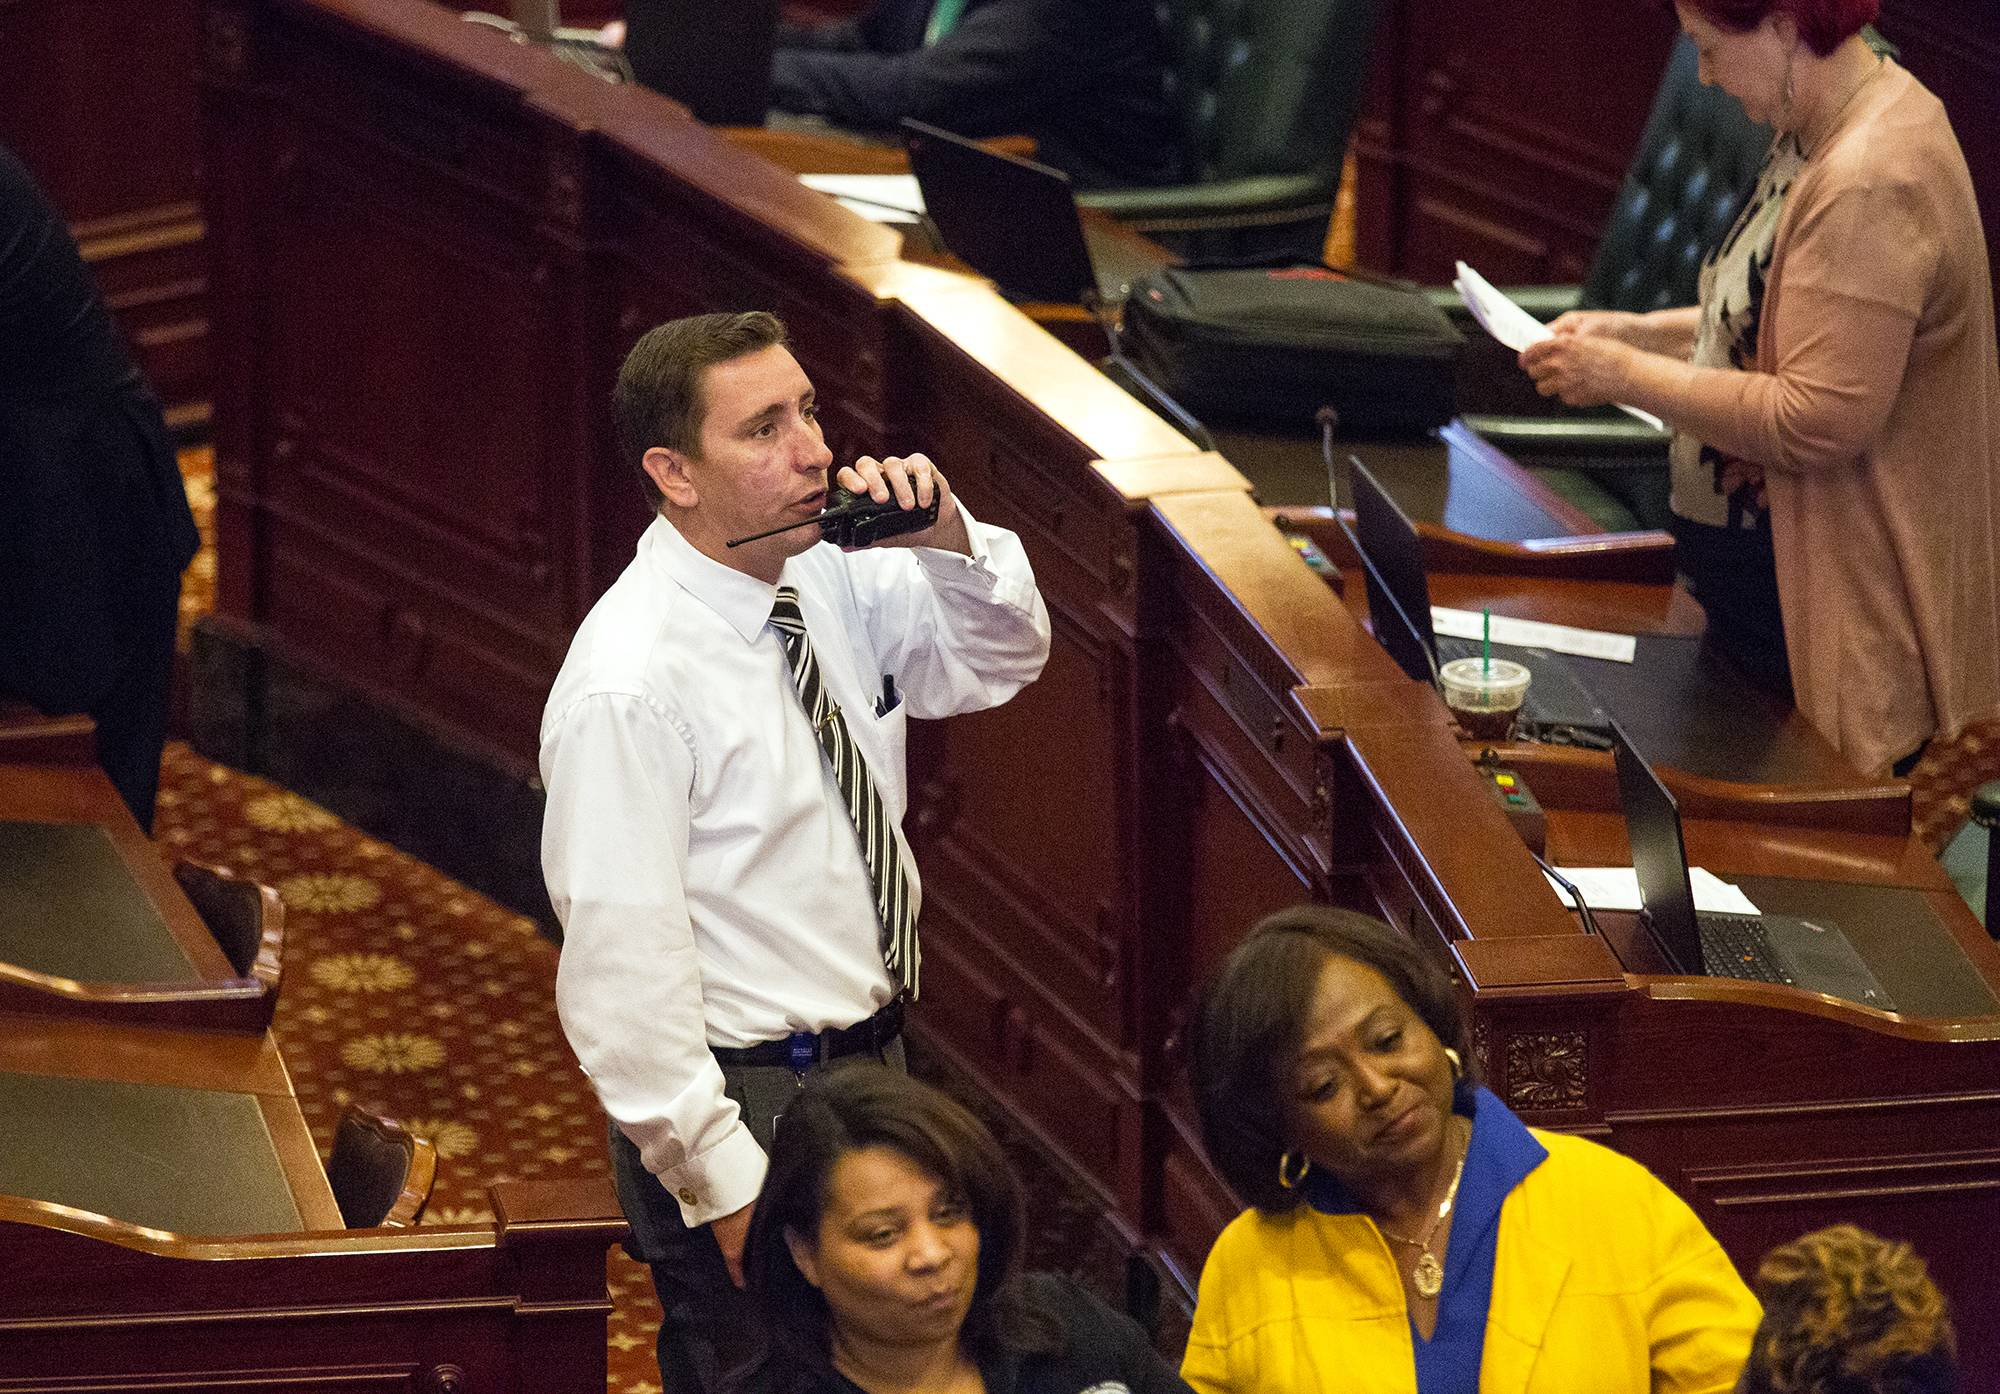 Wayne Padget, House Republican Sergeant at Arms, talks on a radio on the House floor Thursday, July 6, 2017 at the state Capitol in Springfield, Ill. Emergency workers wearing protective gear have entered Gov. Bruce Rauner's office inside the Illinois Capitol after a report of hazardous material that's prompted authorities to block anyone from entering or exiting the building. The investigation has delayed Thursday's critical override vote on a package of bills that could end the state's budget impasse, which has entered a third straight year. (Rich Saal/The State Journal-Register via AP)